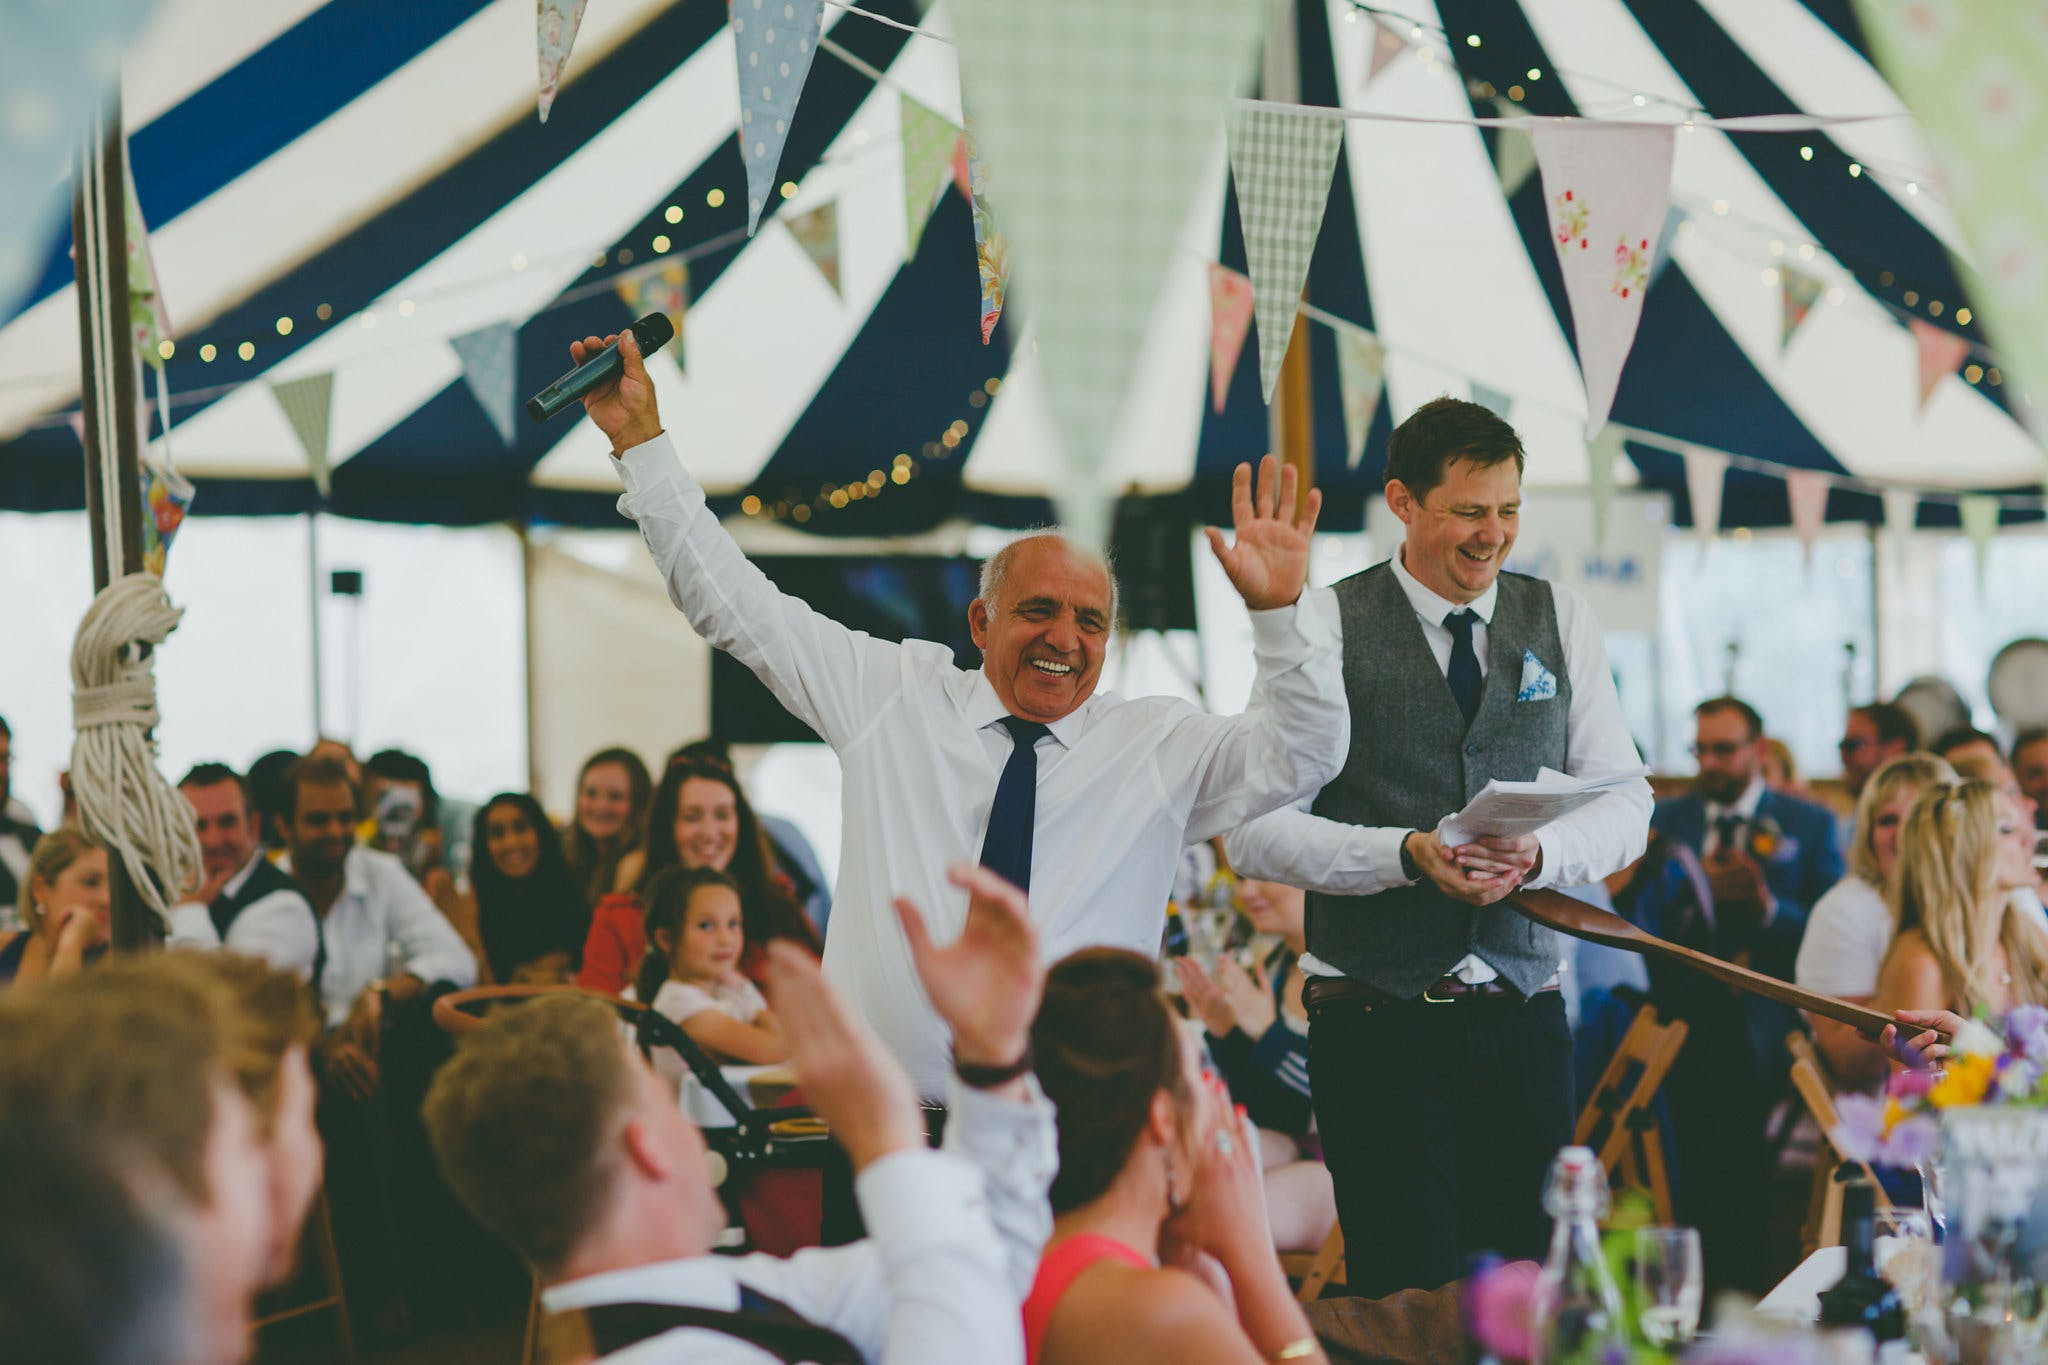 What marquee companies are allowed on MarqueeBookings?